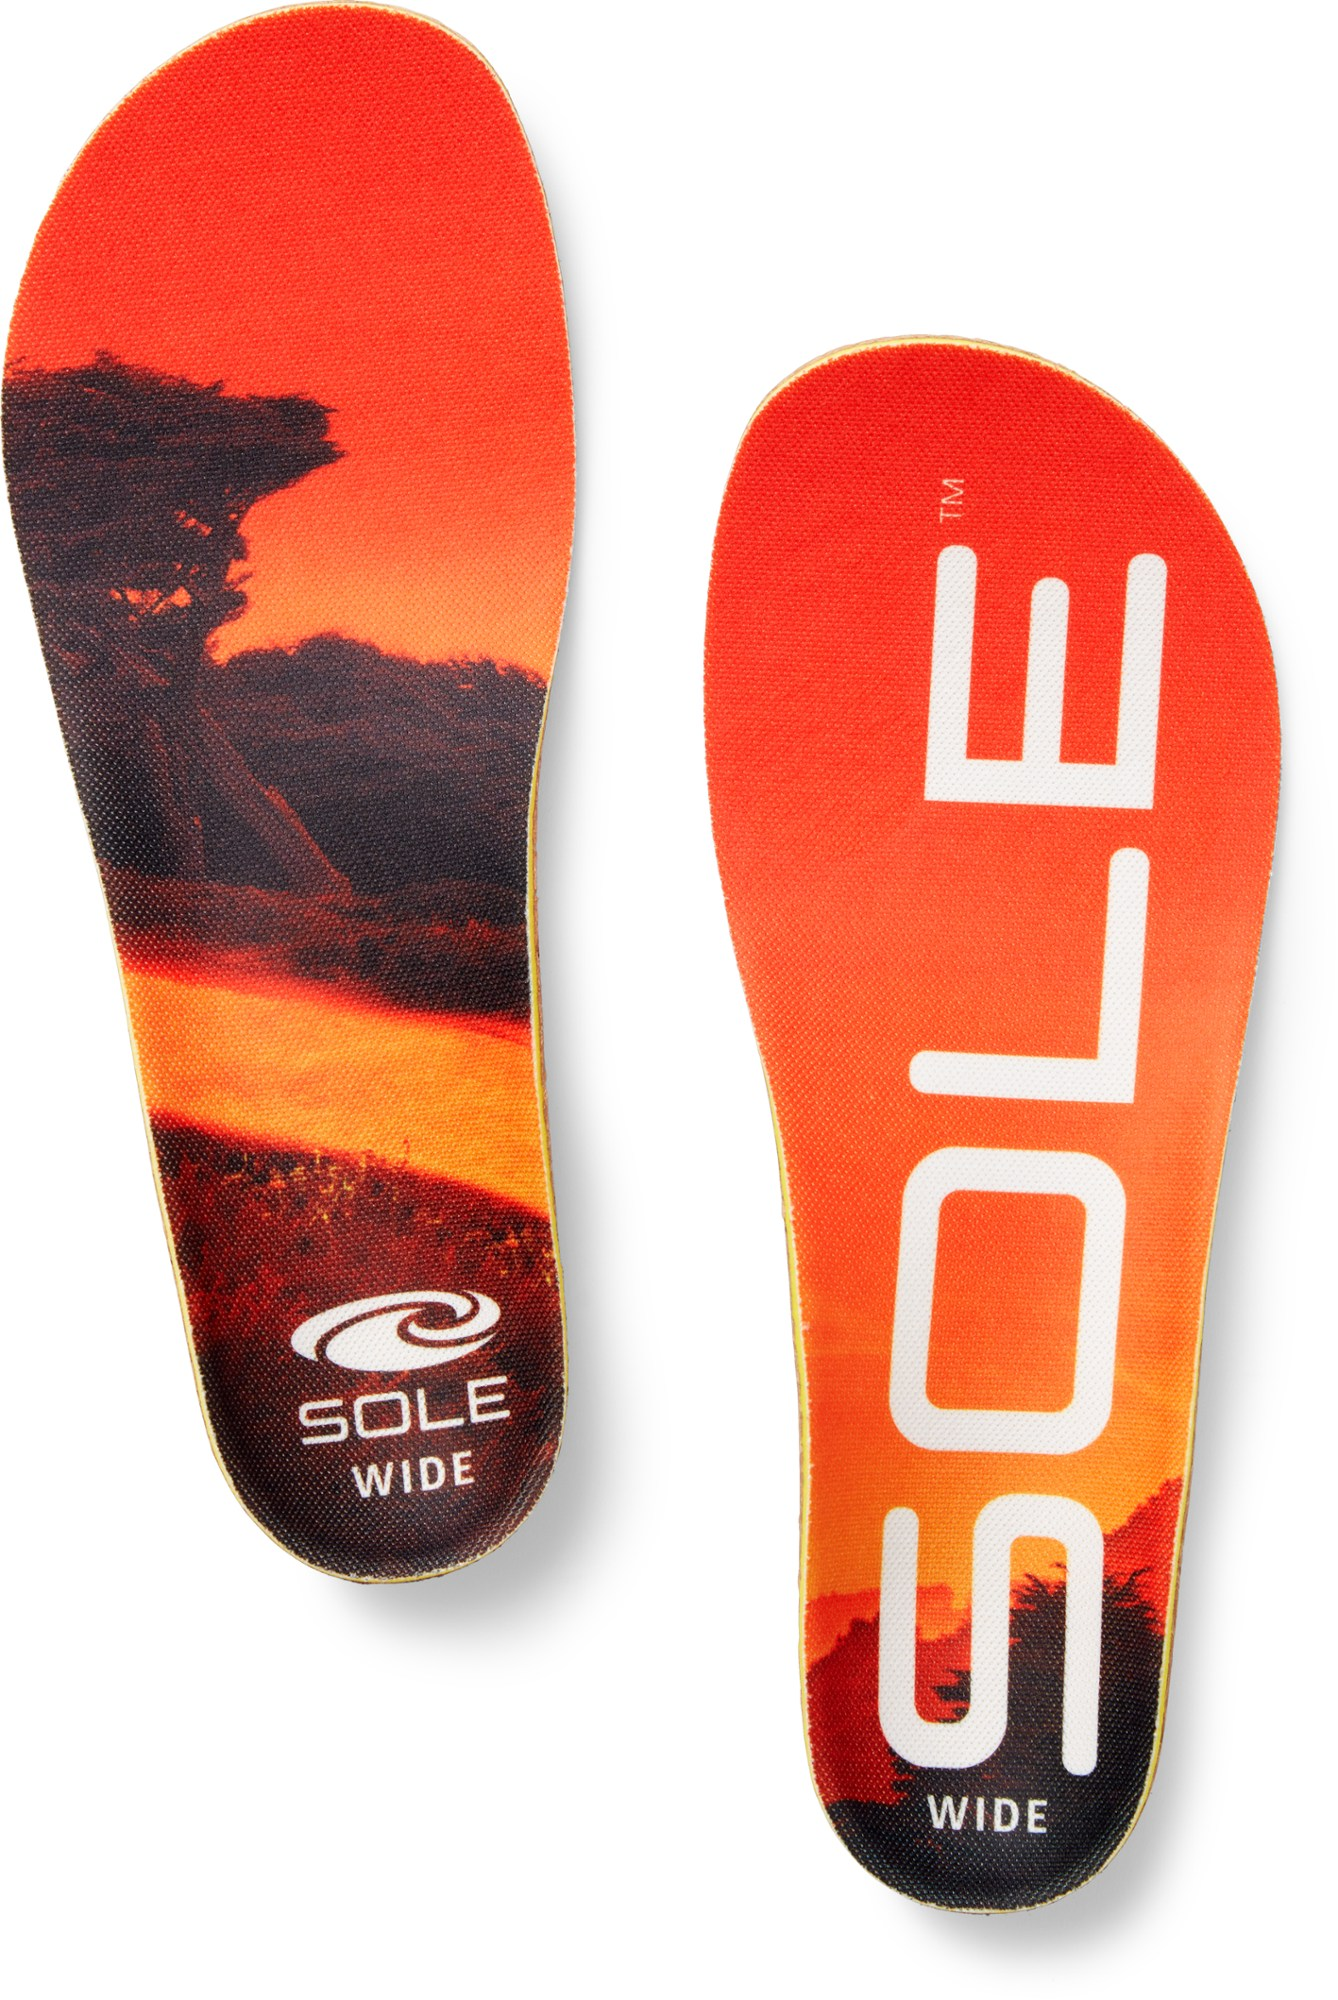 SOLE Performance Medium Wide Insoles